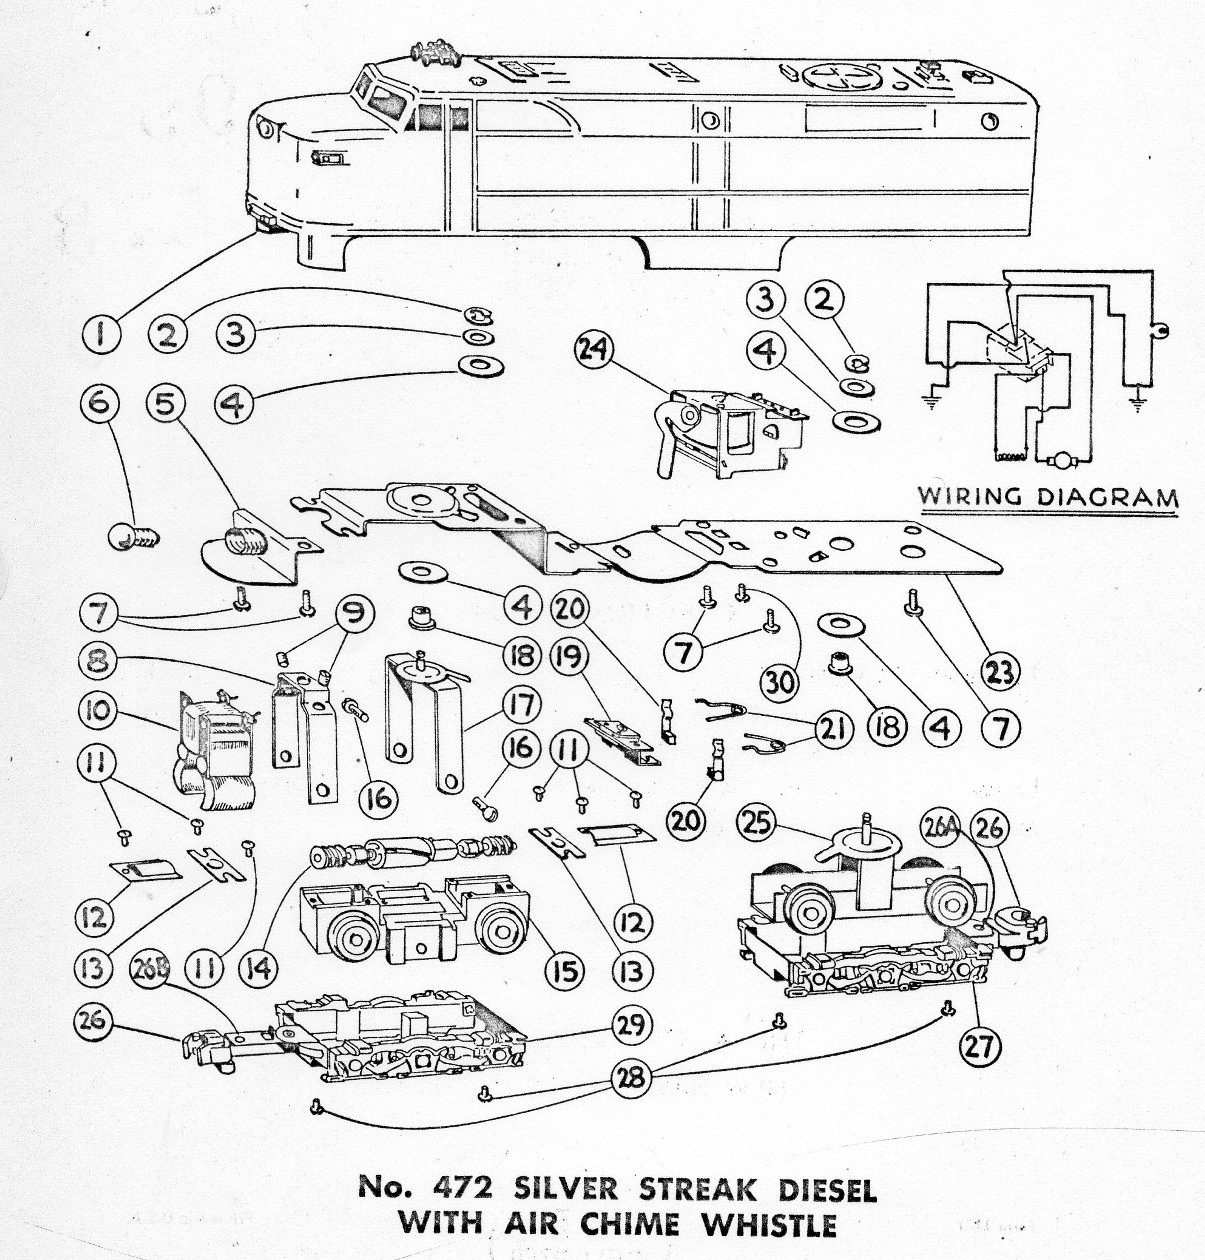 American Flyer Train Engine Wiring Diagram. American Flyer